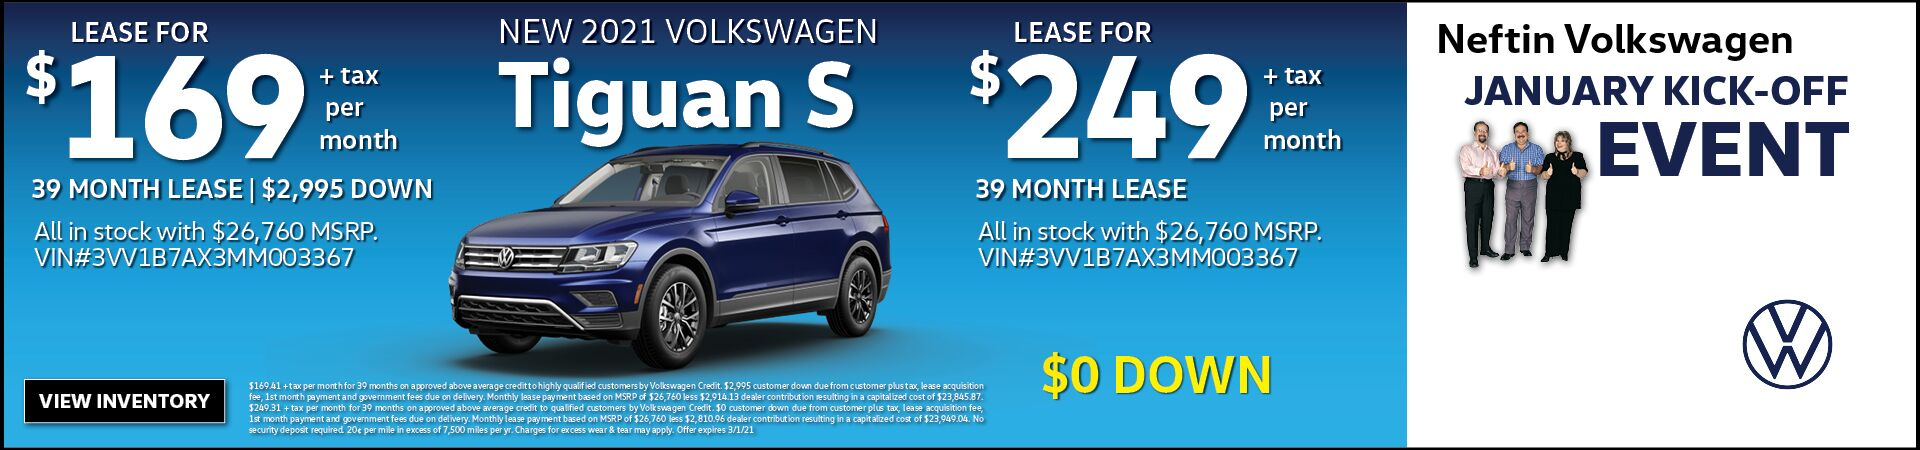 January '21 Tiguan S Lease Offer